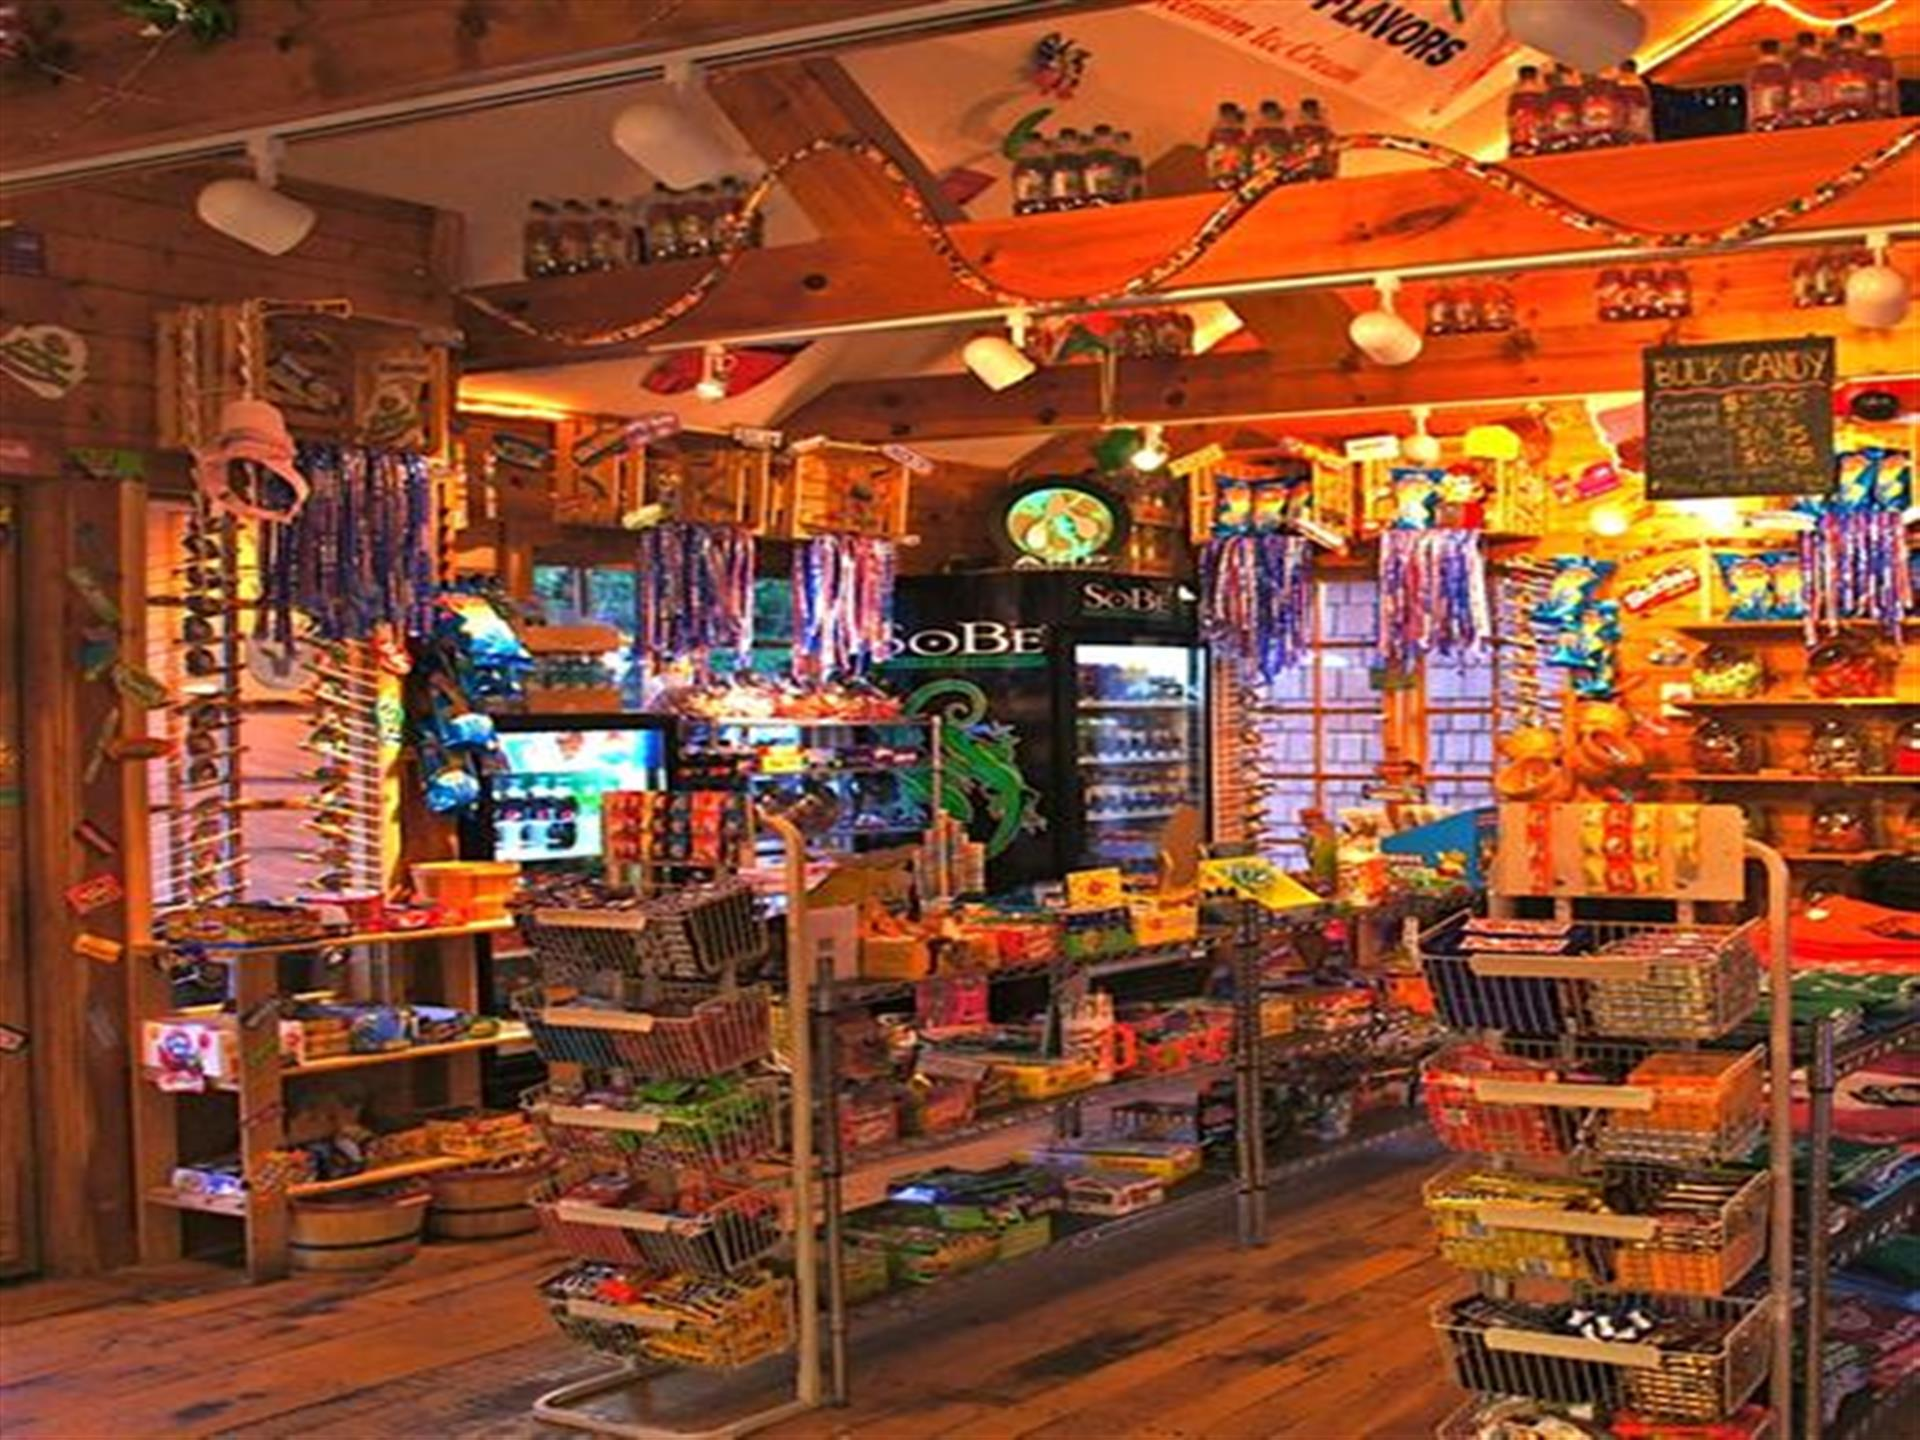 inside view of store